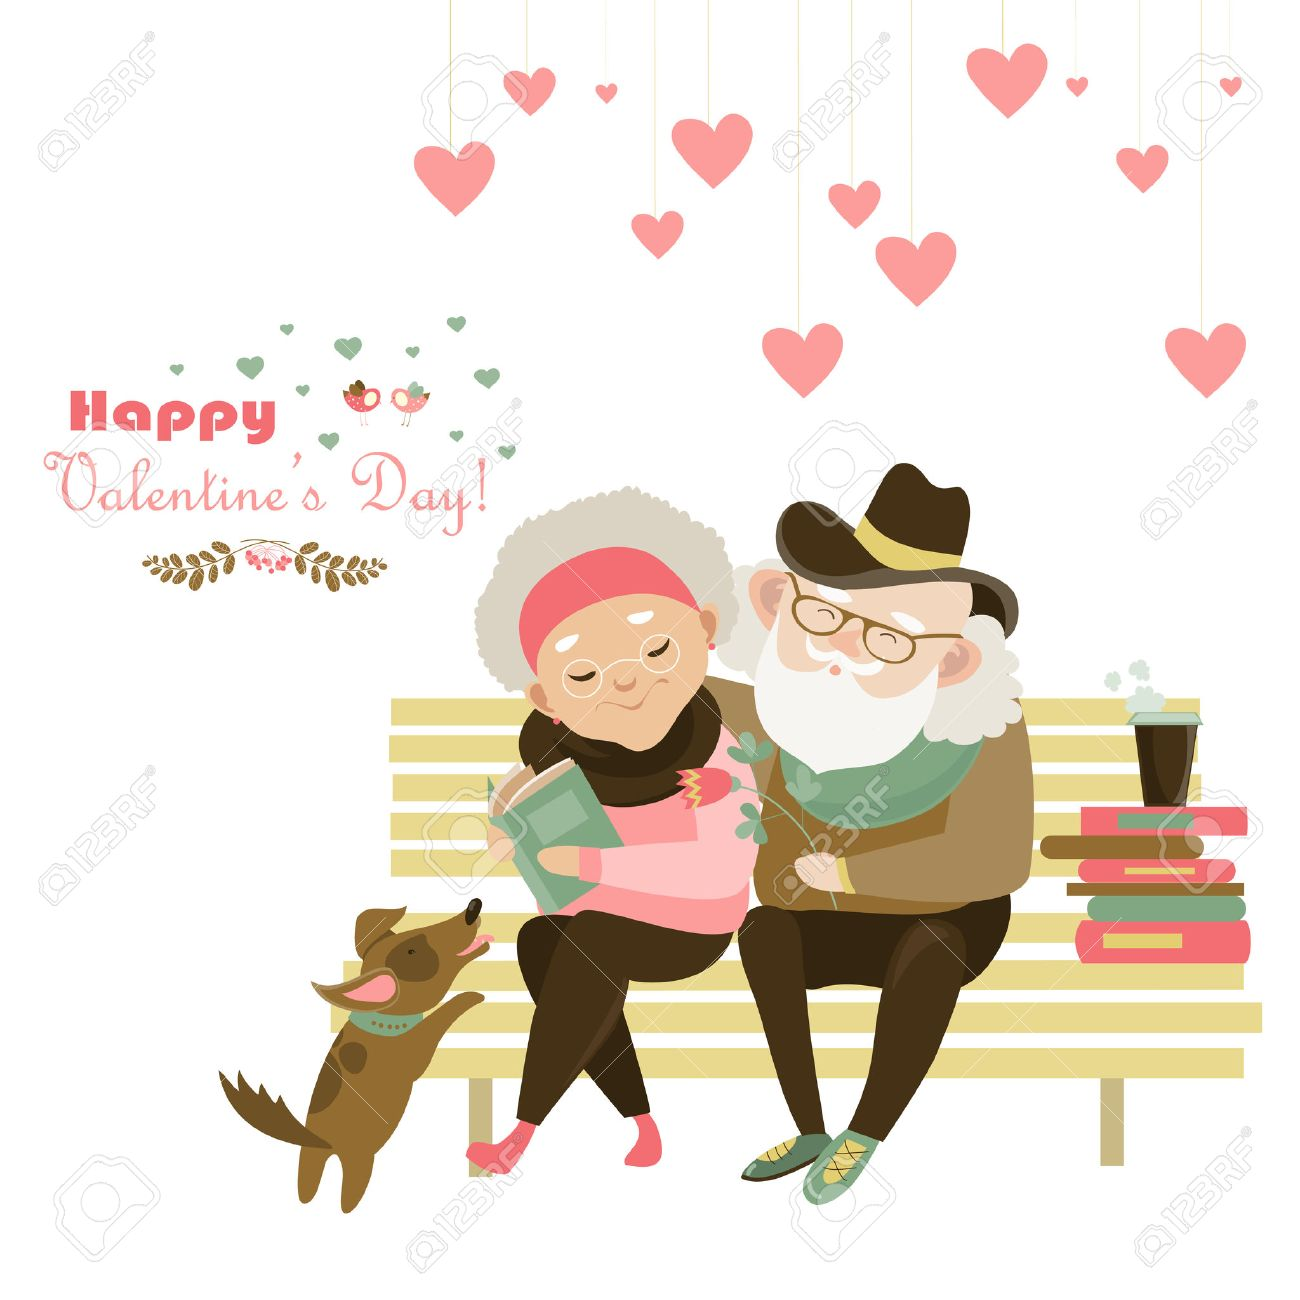 Old couple in love sitting on bench. - 50153845